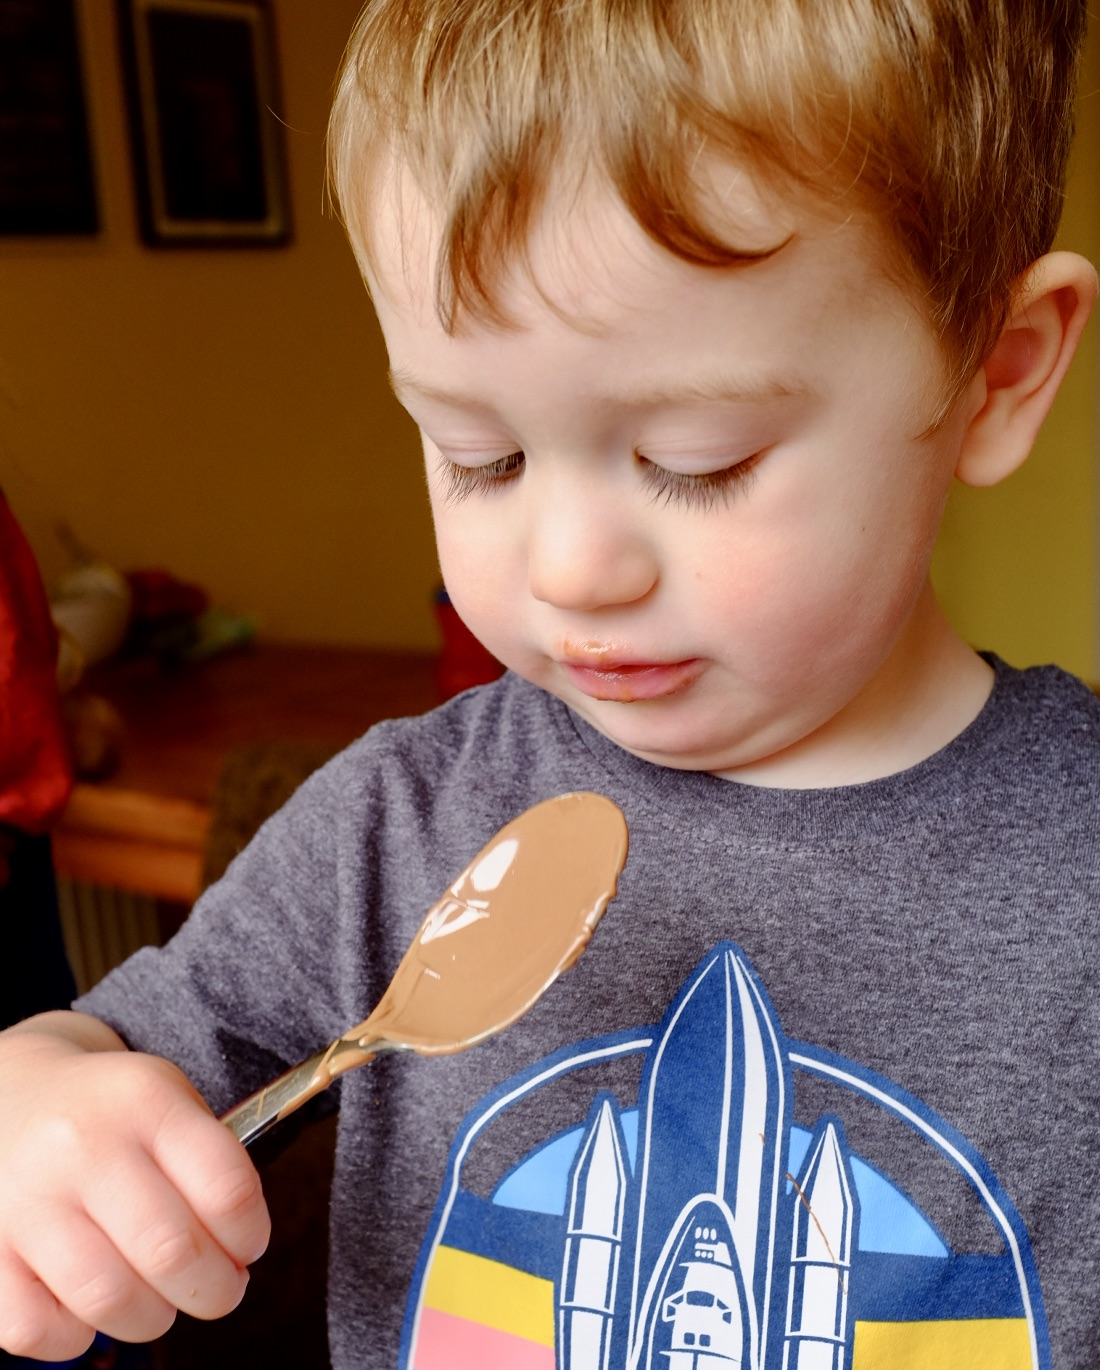 Little boy licking a chocolate spoon